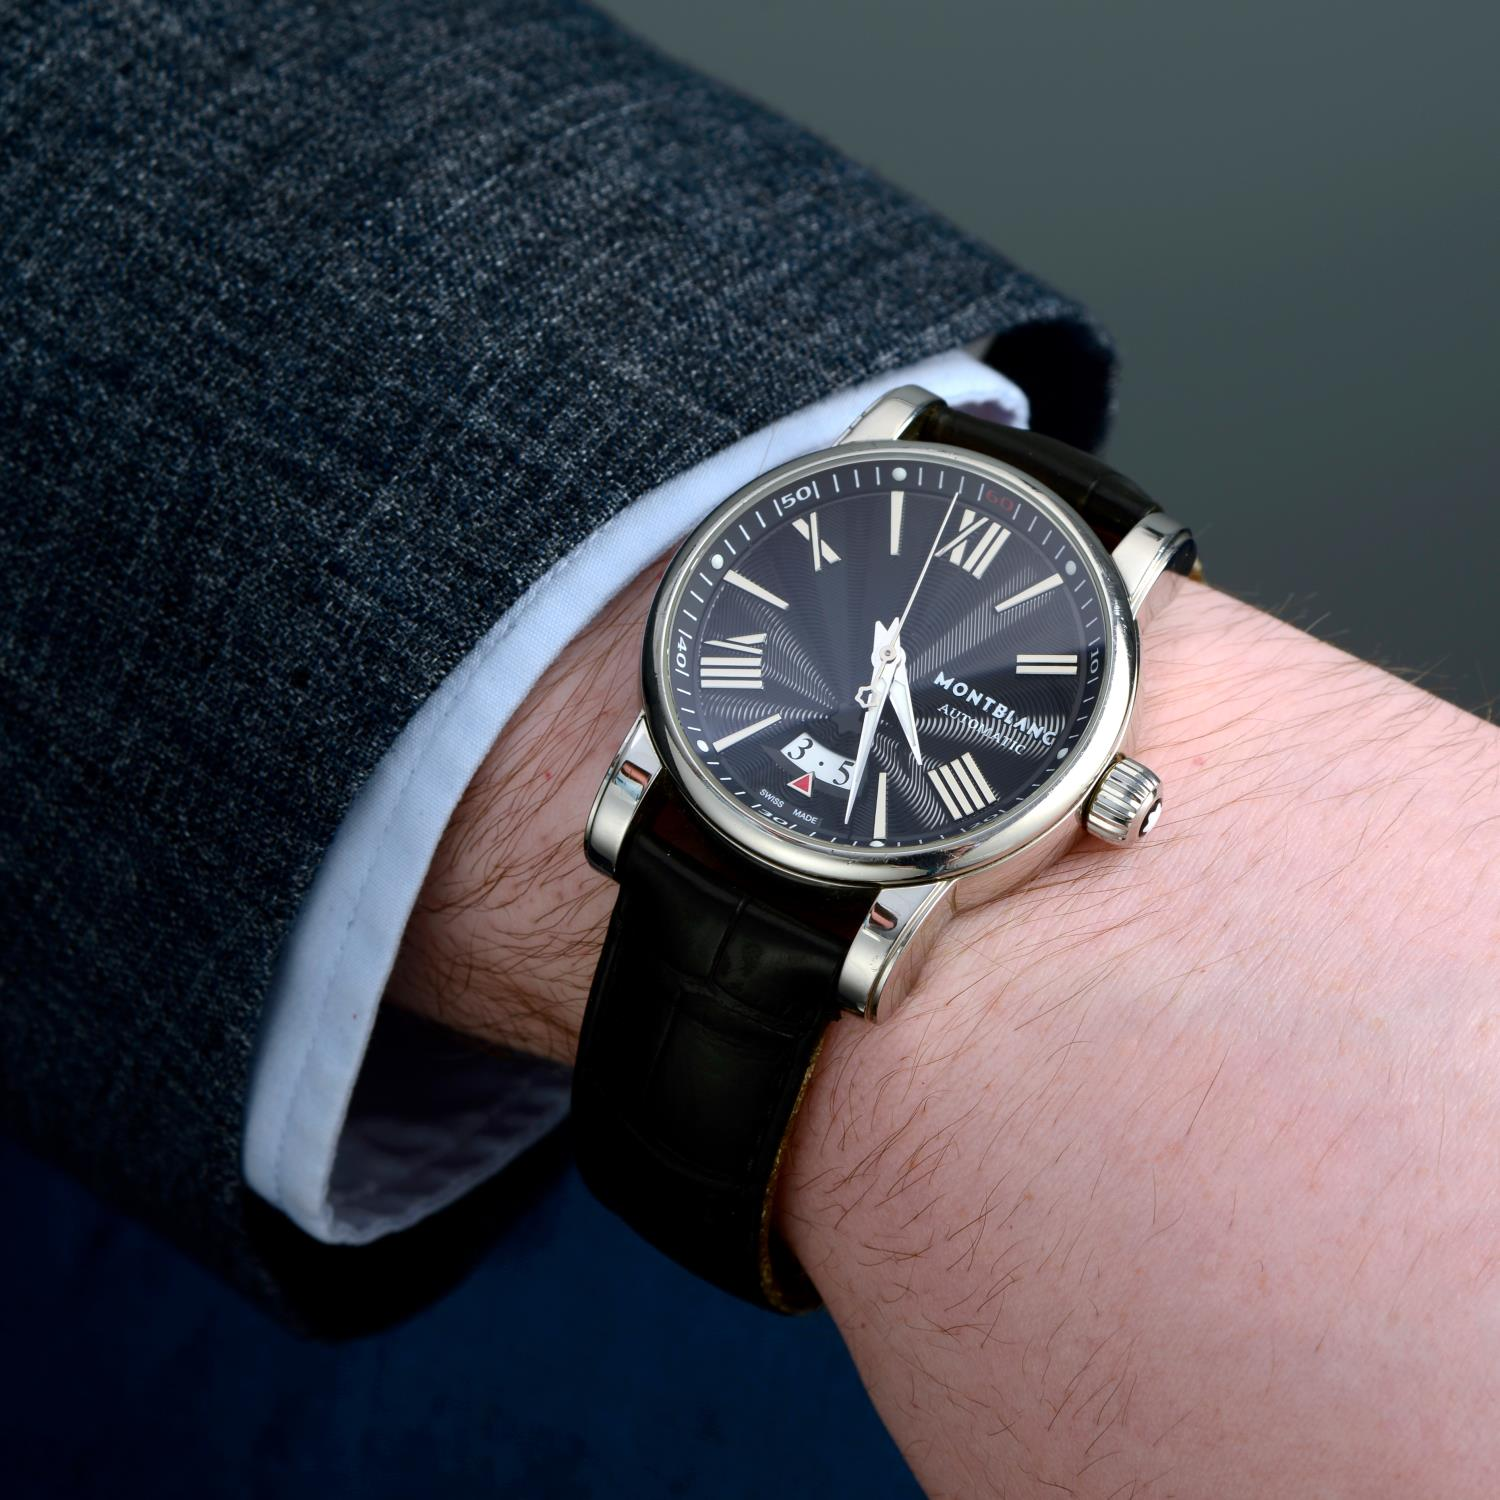 MONTBLANC - a Star wrist watch. - Image 3 of 5